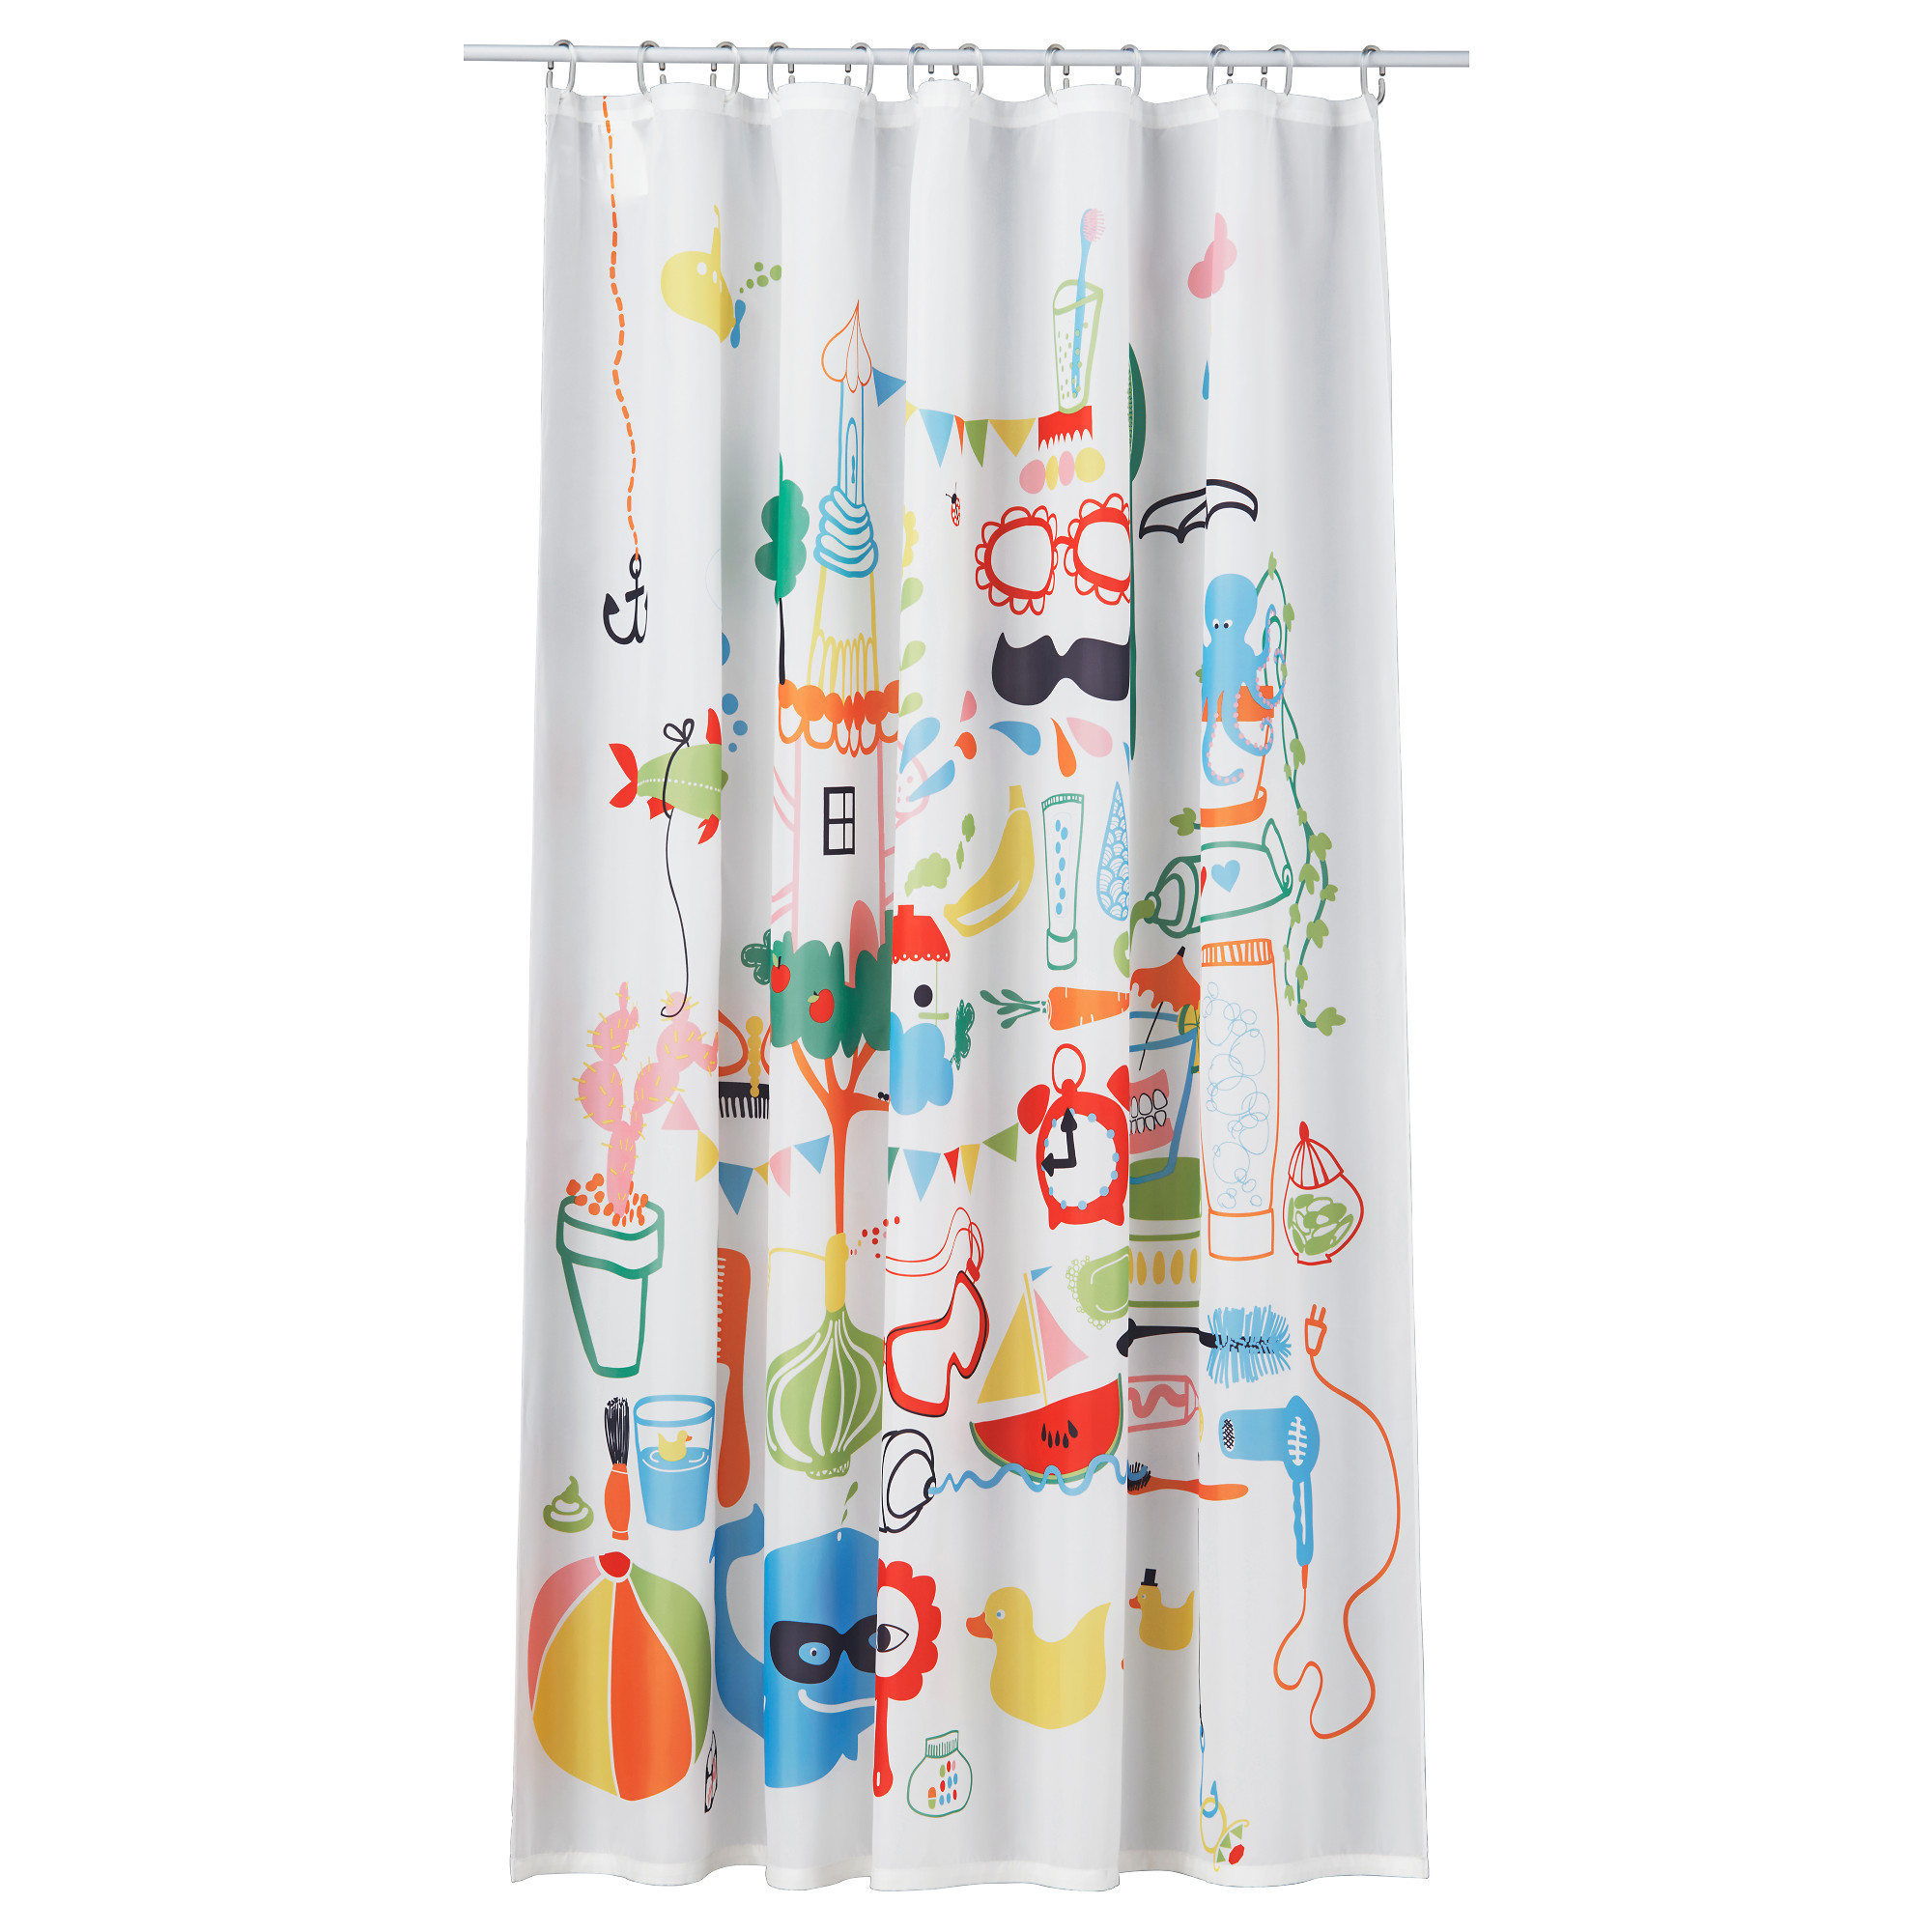 Ikea Shower Curtain for Best Your Bathroom Decoration: 84 Shower Curtain | Ikea Shower Curtain | Shower Curtain Liner